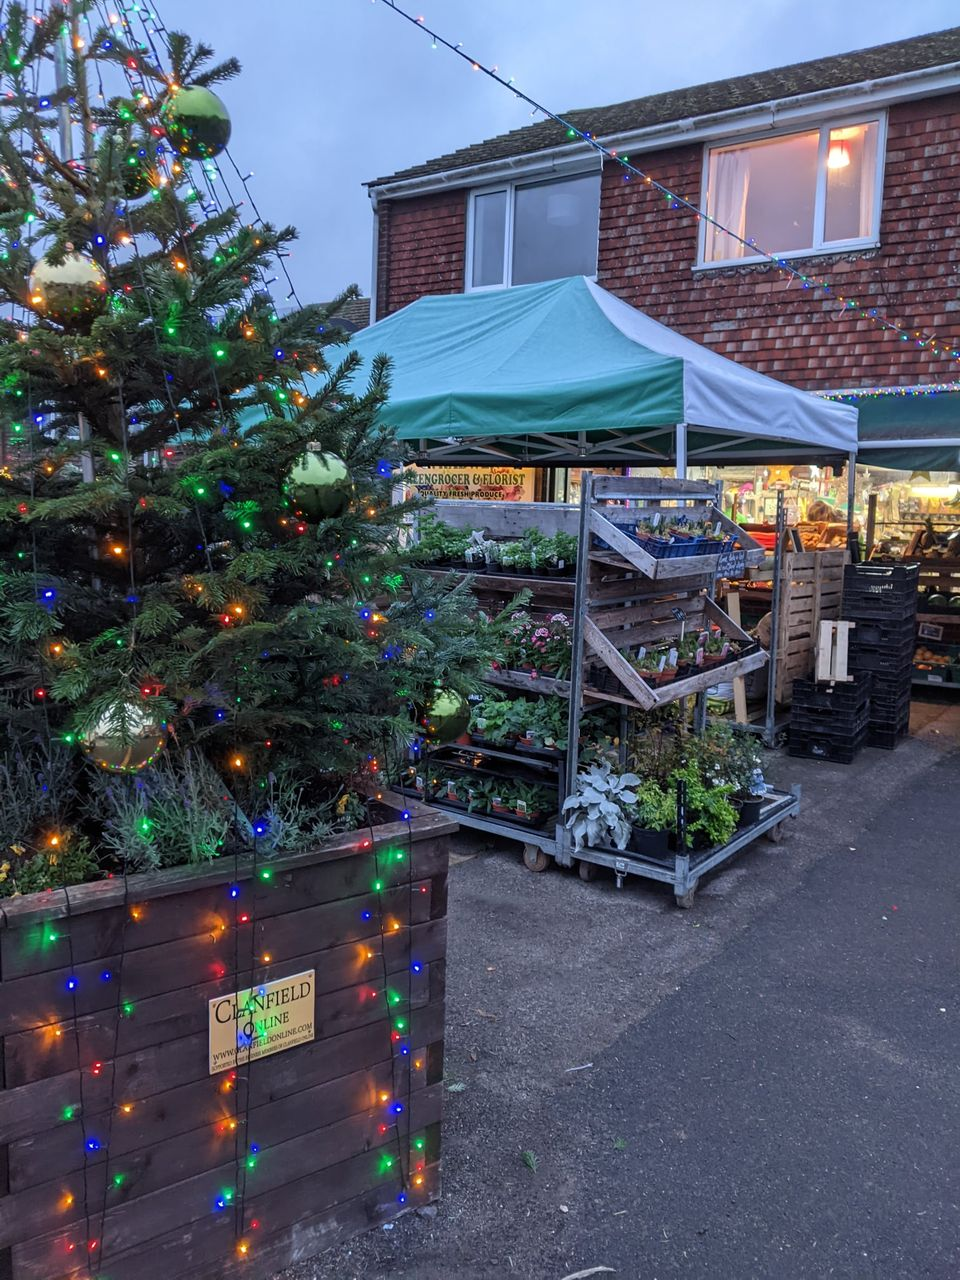 Clanfield Greengrocer & Florist Christmas-New Year Hours